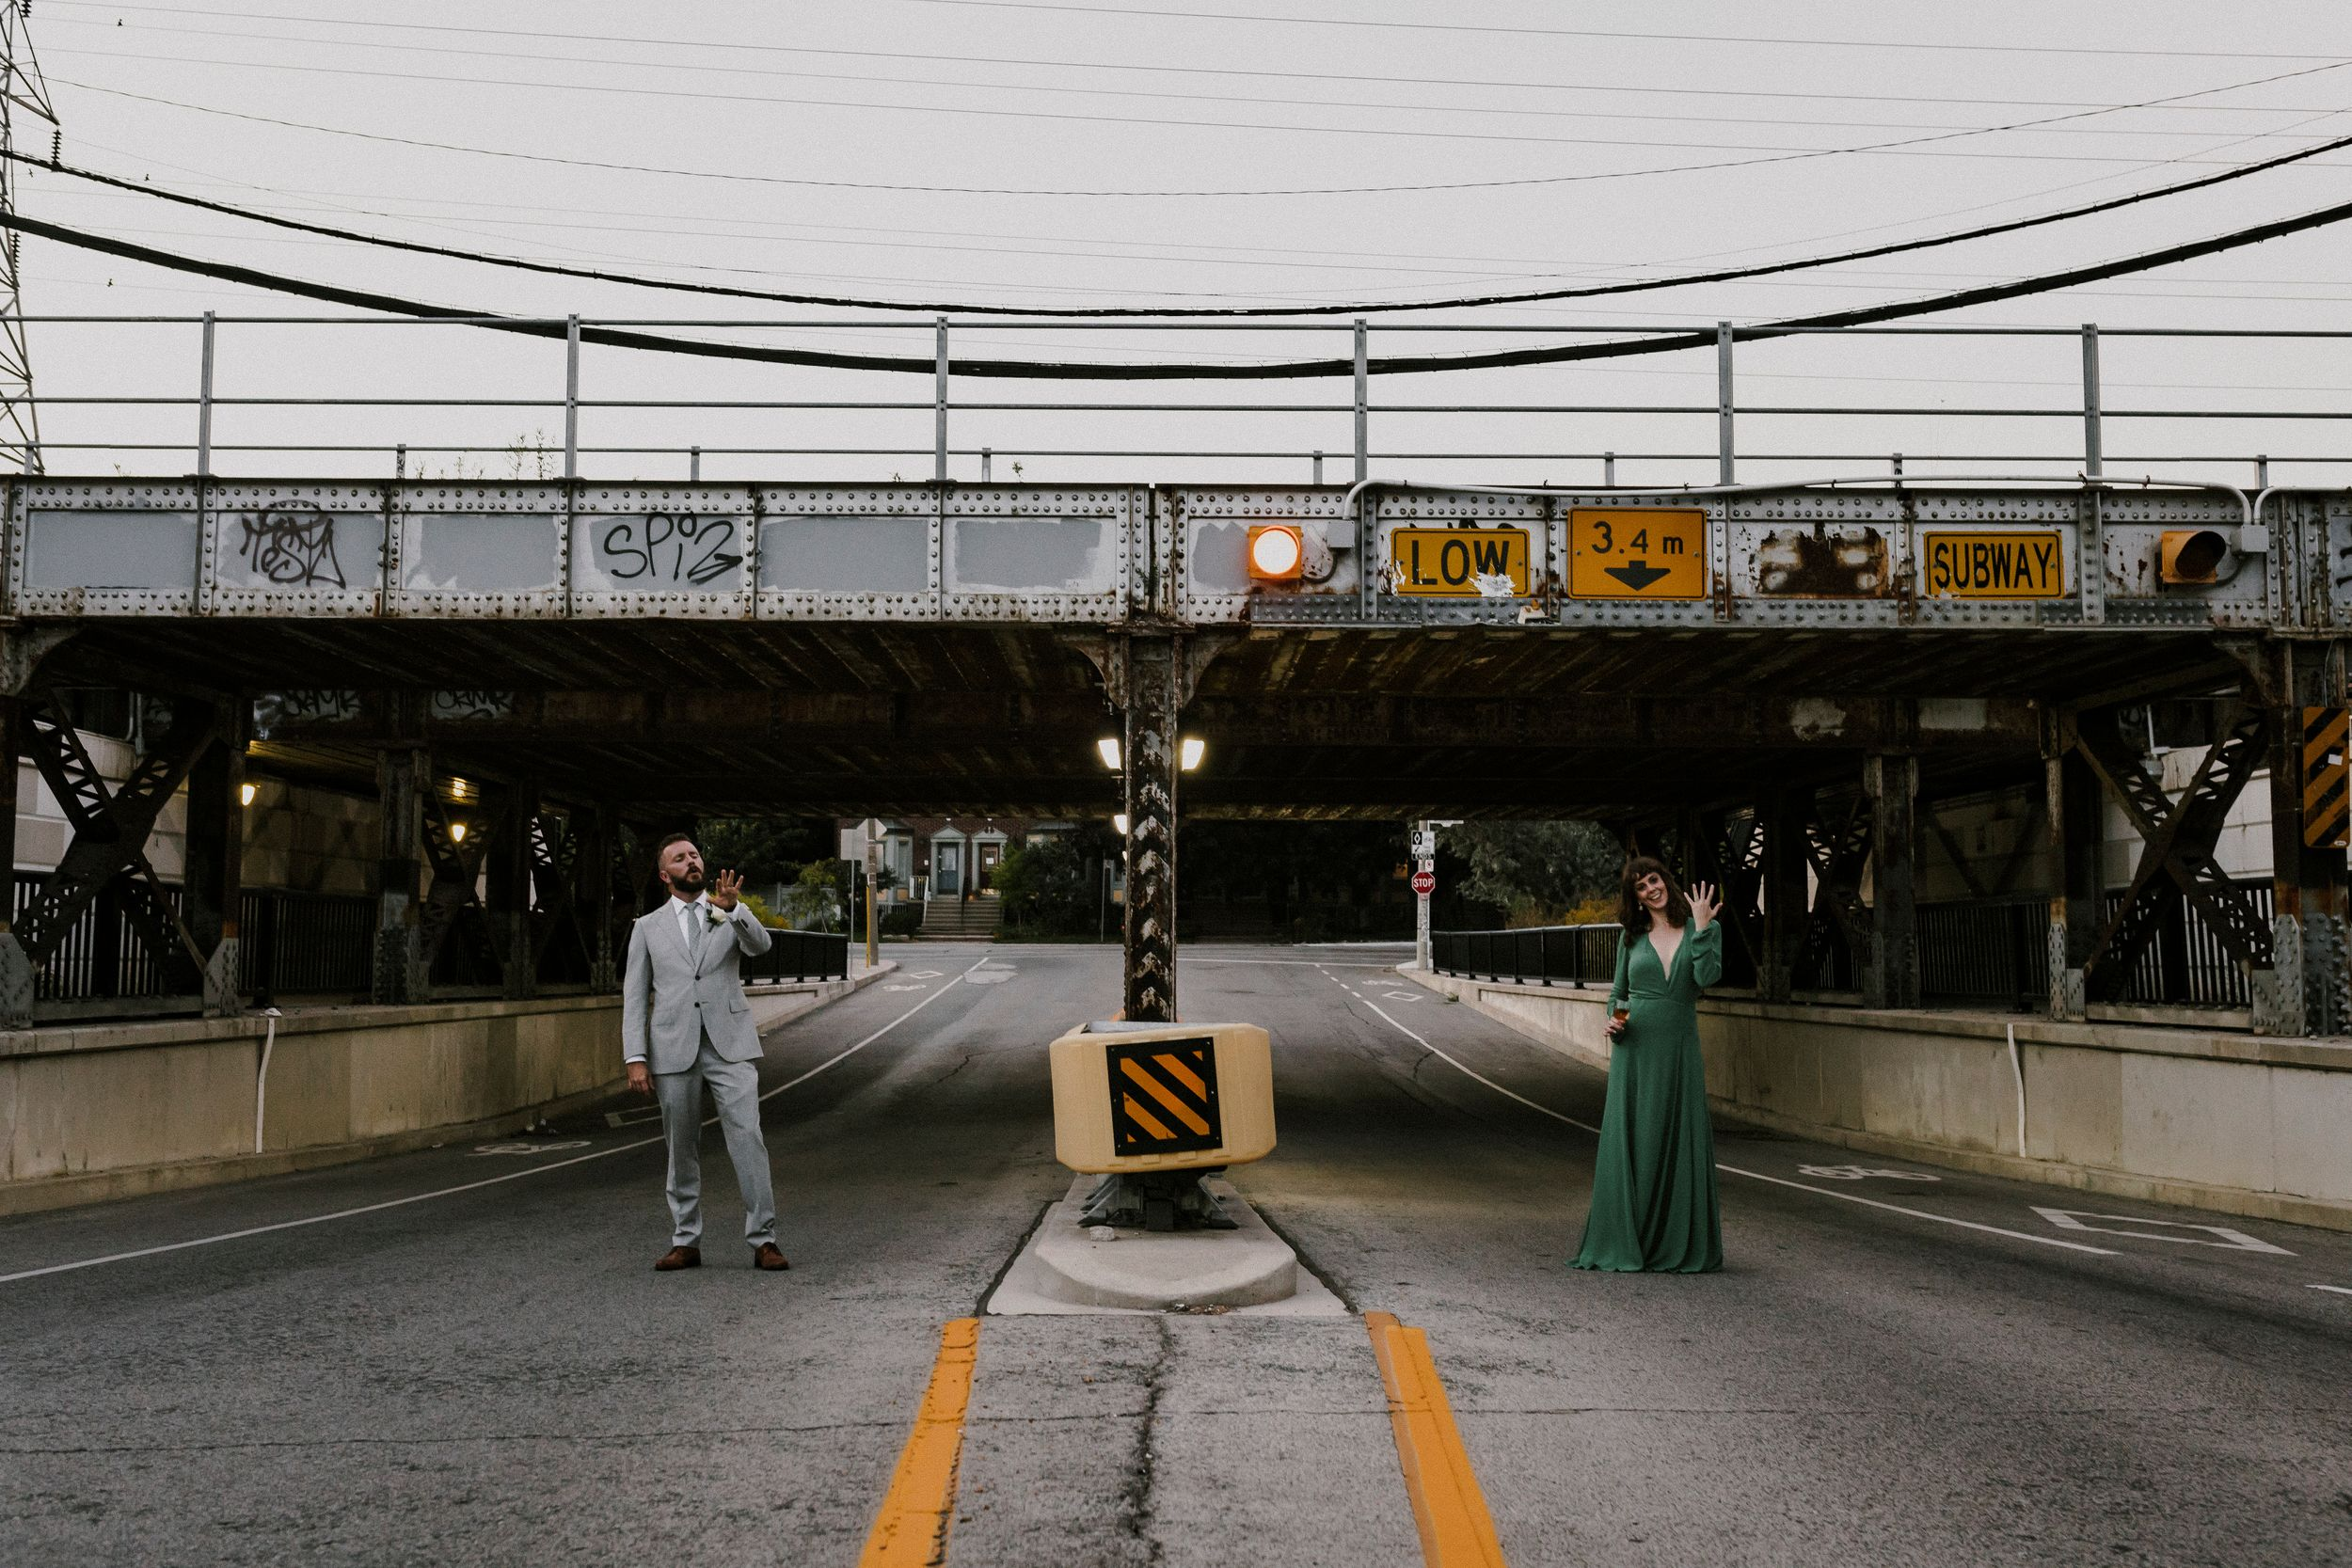 Nontraditional Toronto couple at underpass showing off their wedding rings and holding drinks. Green wedding dress.